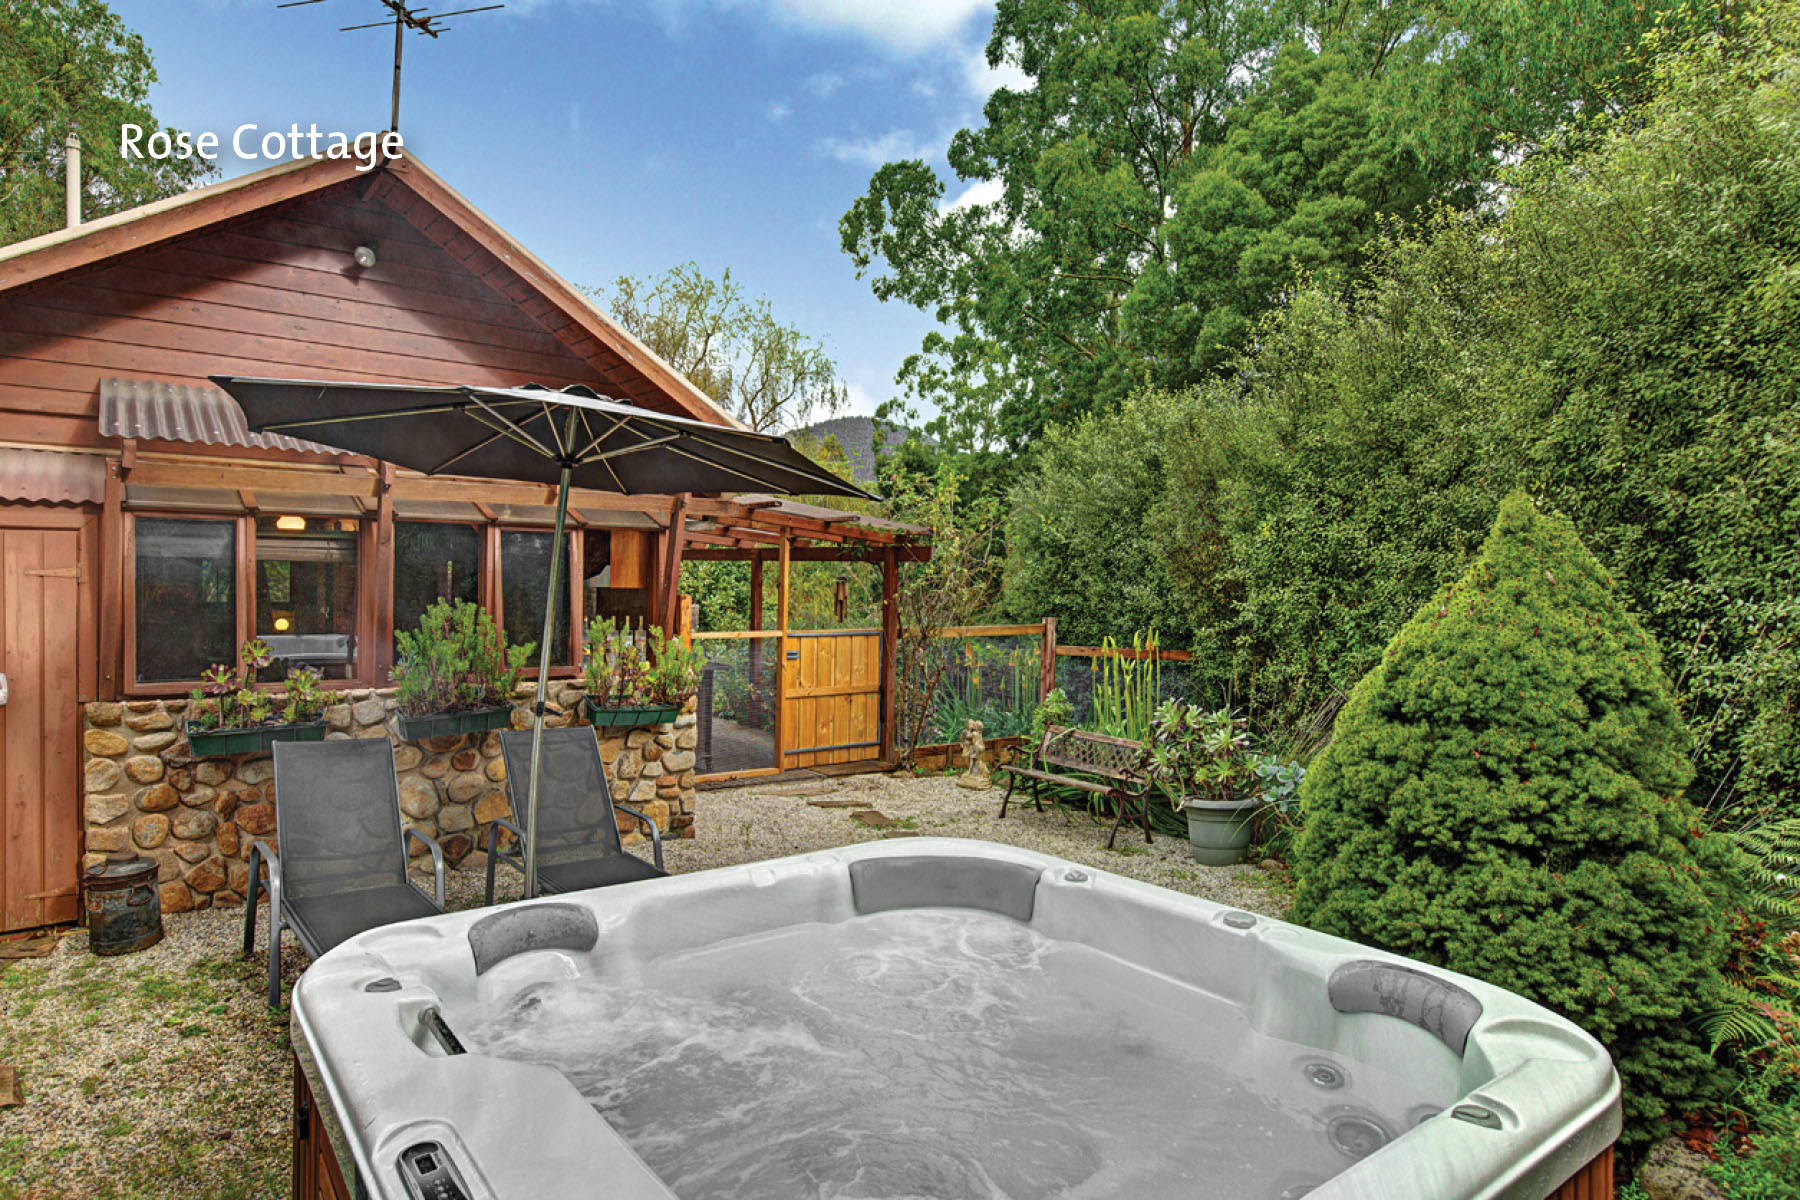 Warburton Luxury Accommodation B B Boutique Spa Cottages Forget Me Not Cottages